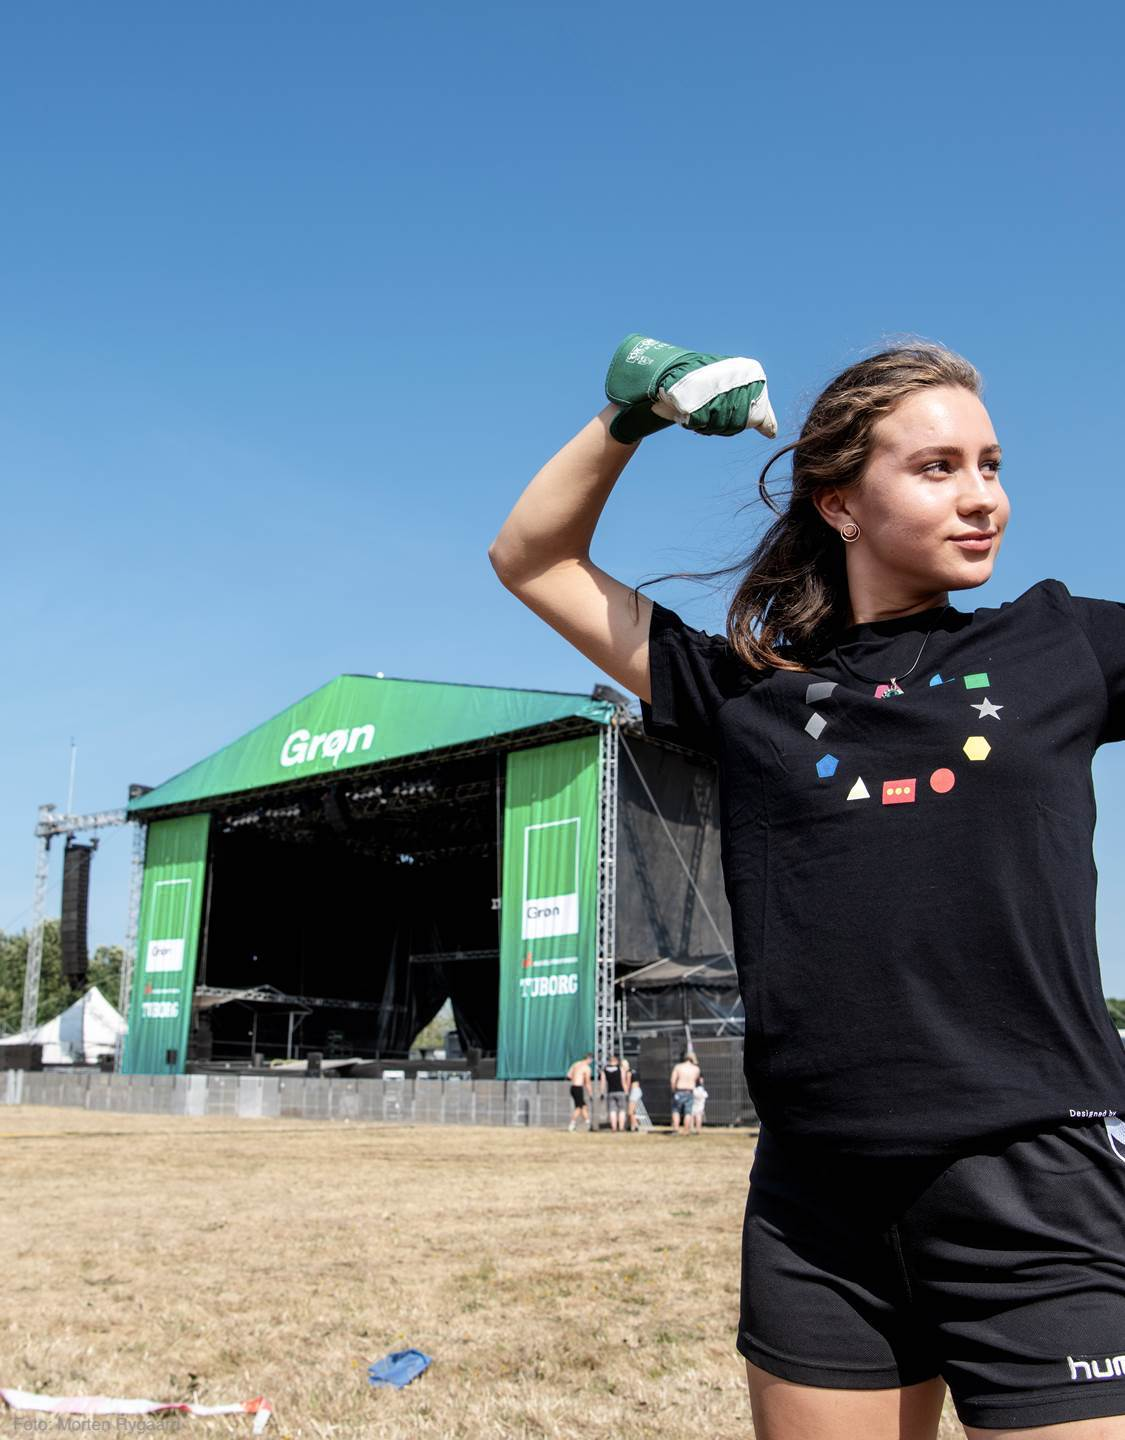 Groen volunteer